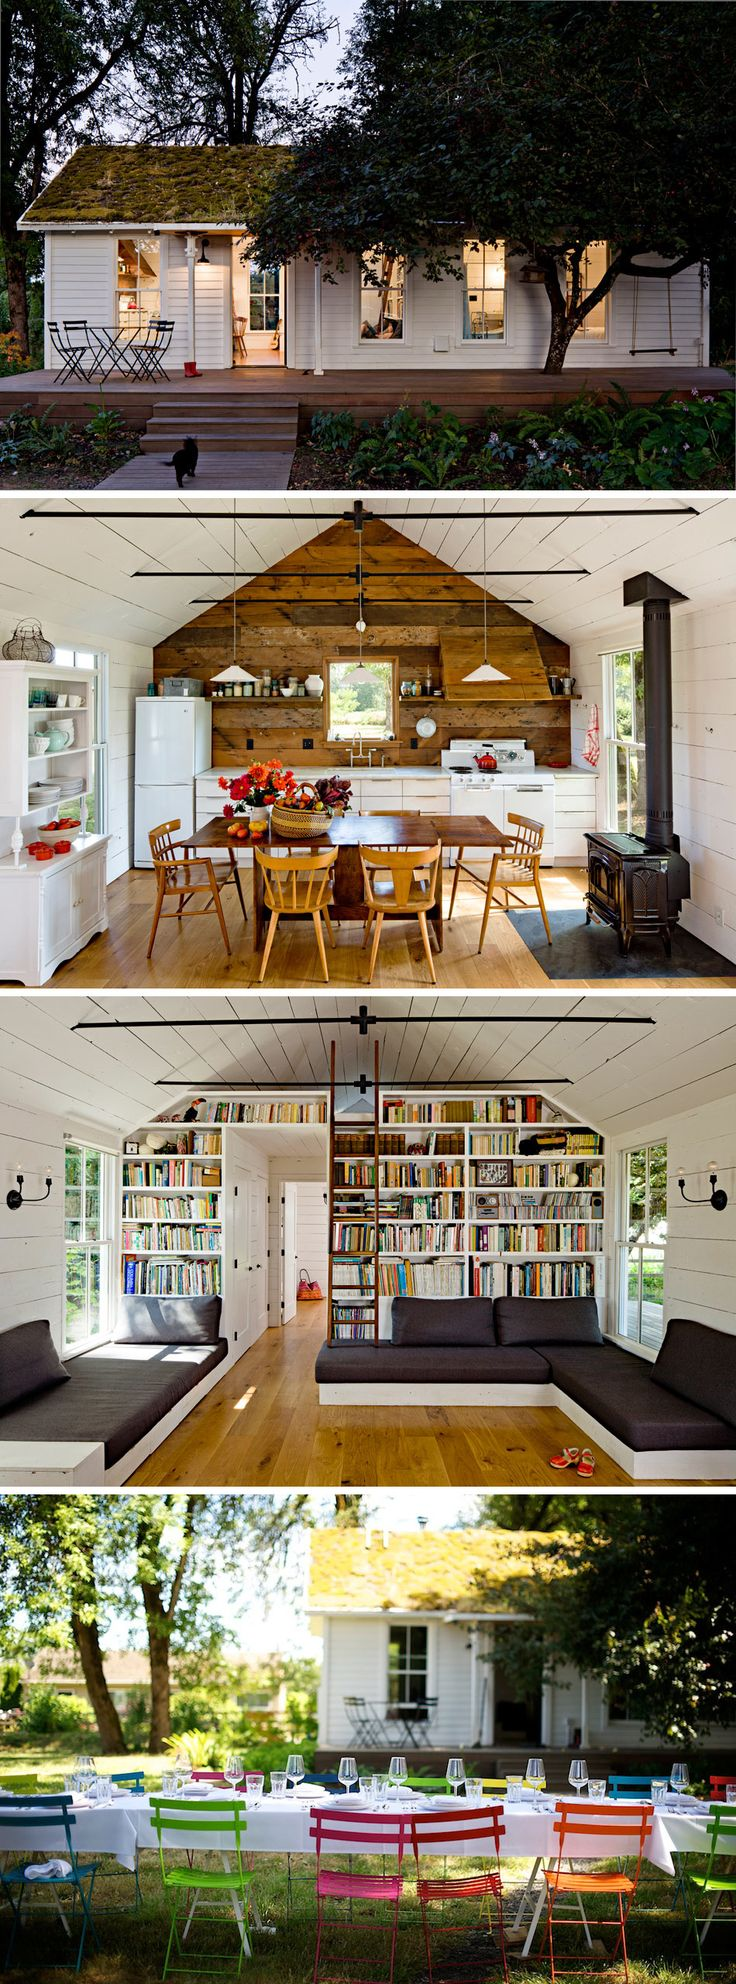 Tiny houses on pinterest - My Favorite Tiny House Approx 550 Sq Feet Just Add Some Solar